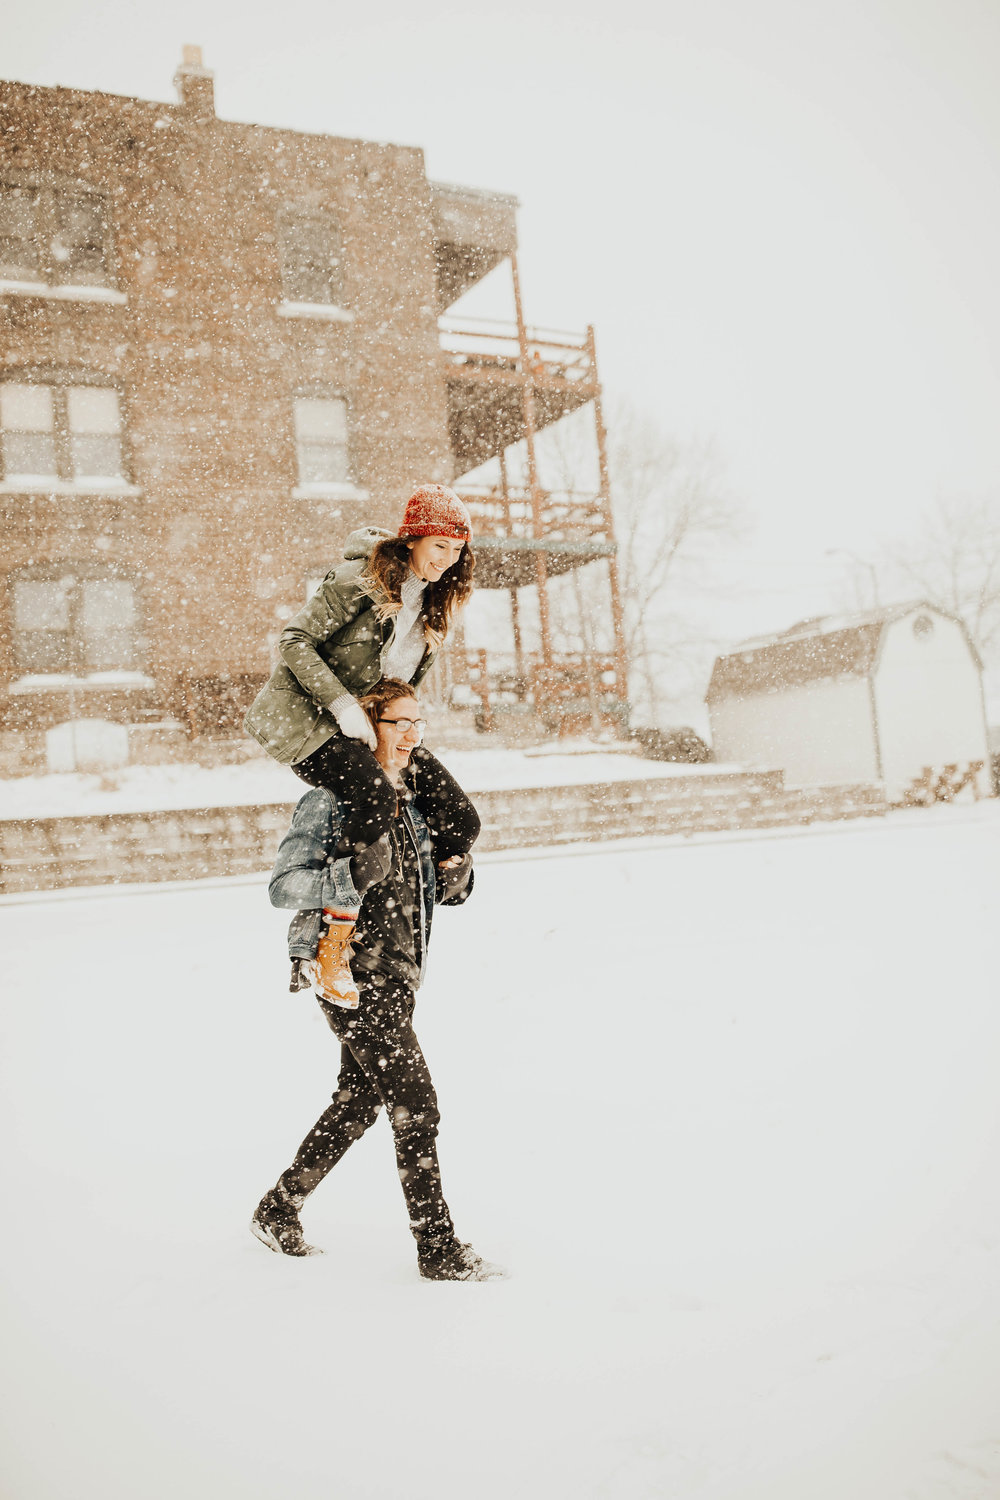 DJ and Erin Kansas City Snowfall Engagement 11.jpg